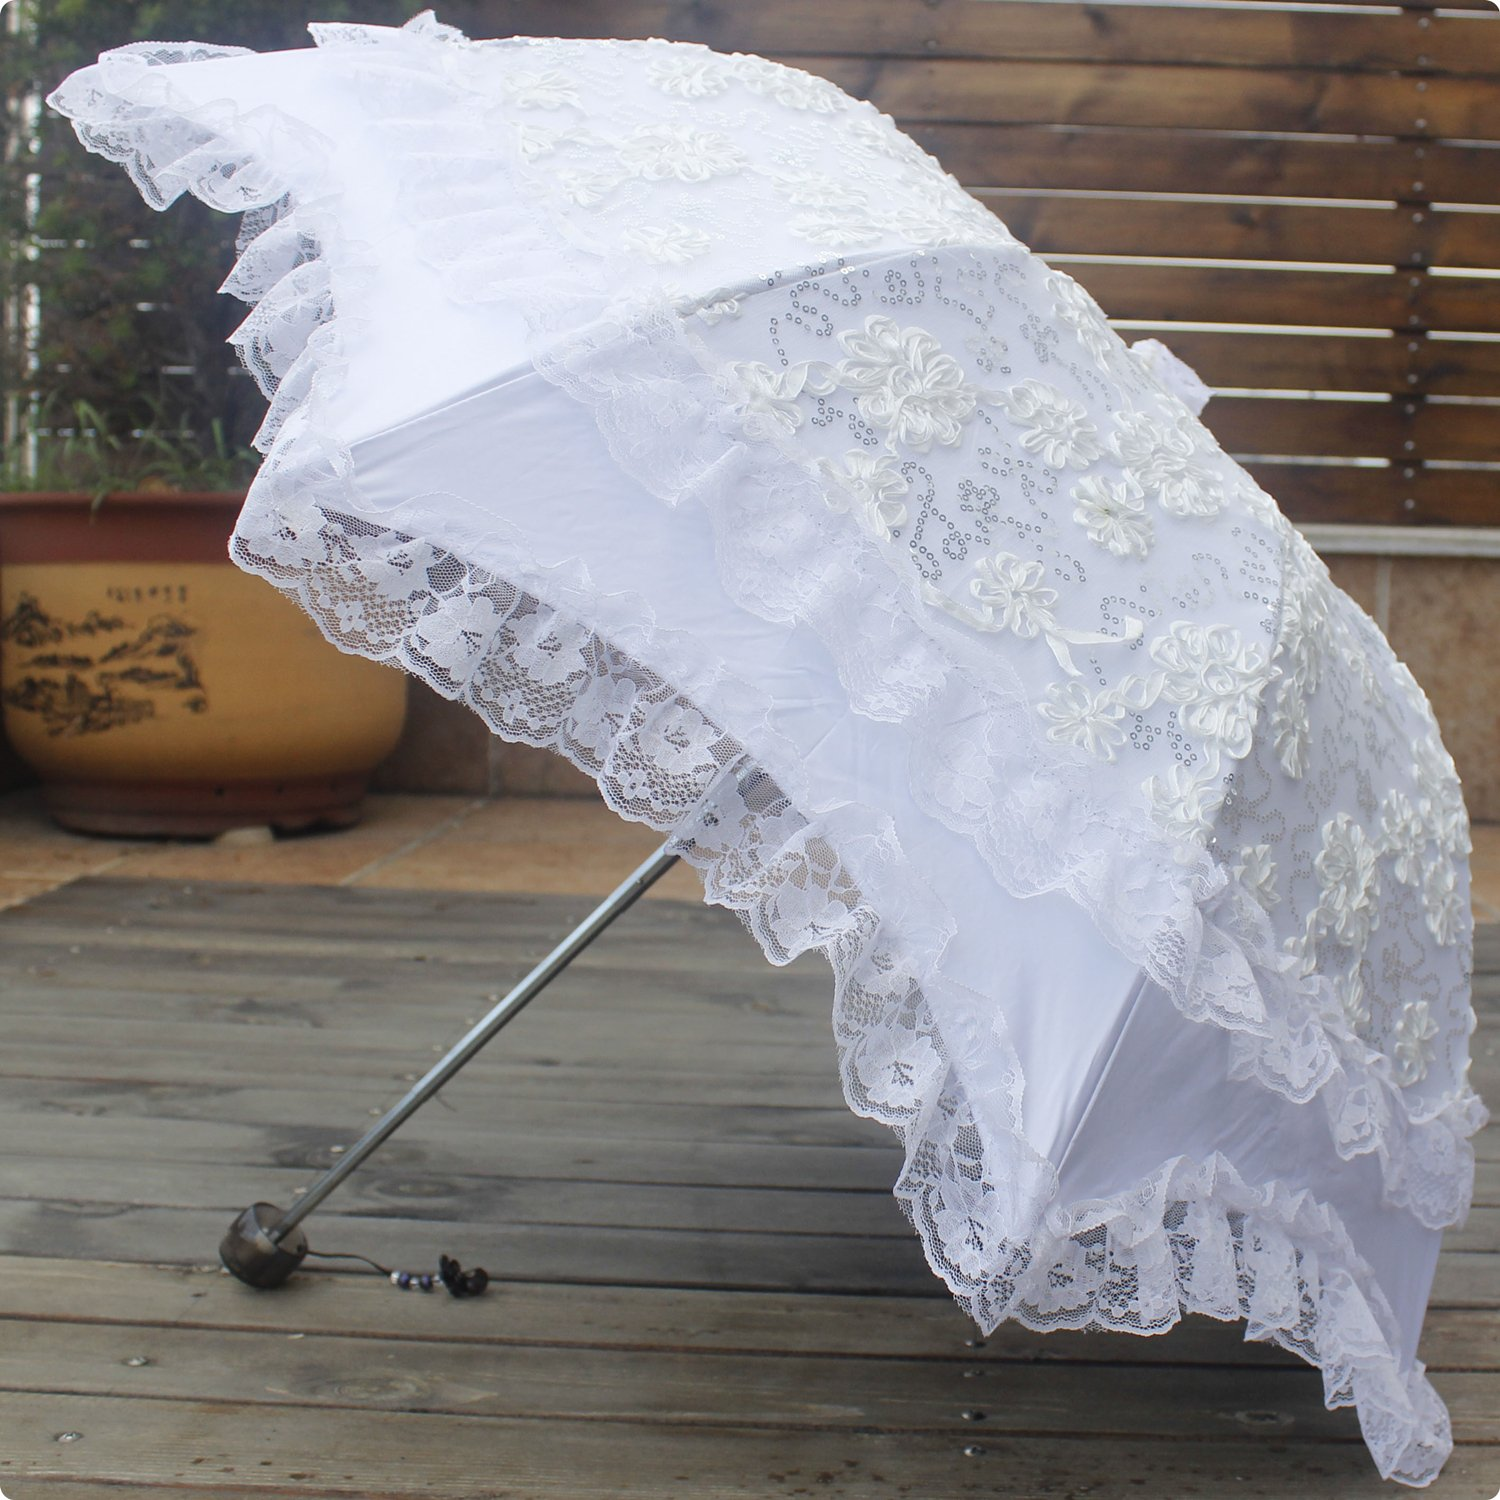 Victorian Parasols, Umbrella | Lace Parosol History Honeystore Mushroom Umbrellas Three Folding Vintage Lace Parasol Bride Umbrella $34.69 AT vintagedancer.com